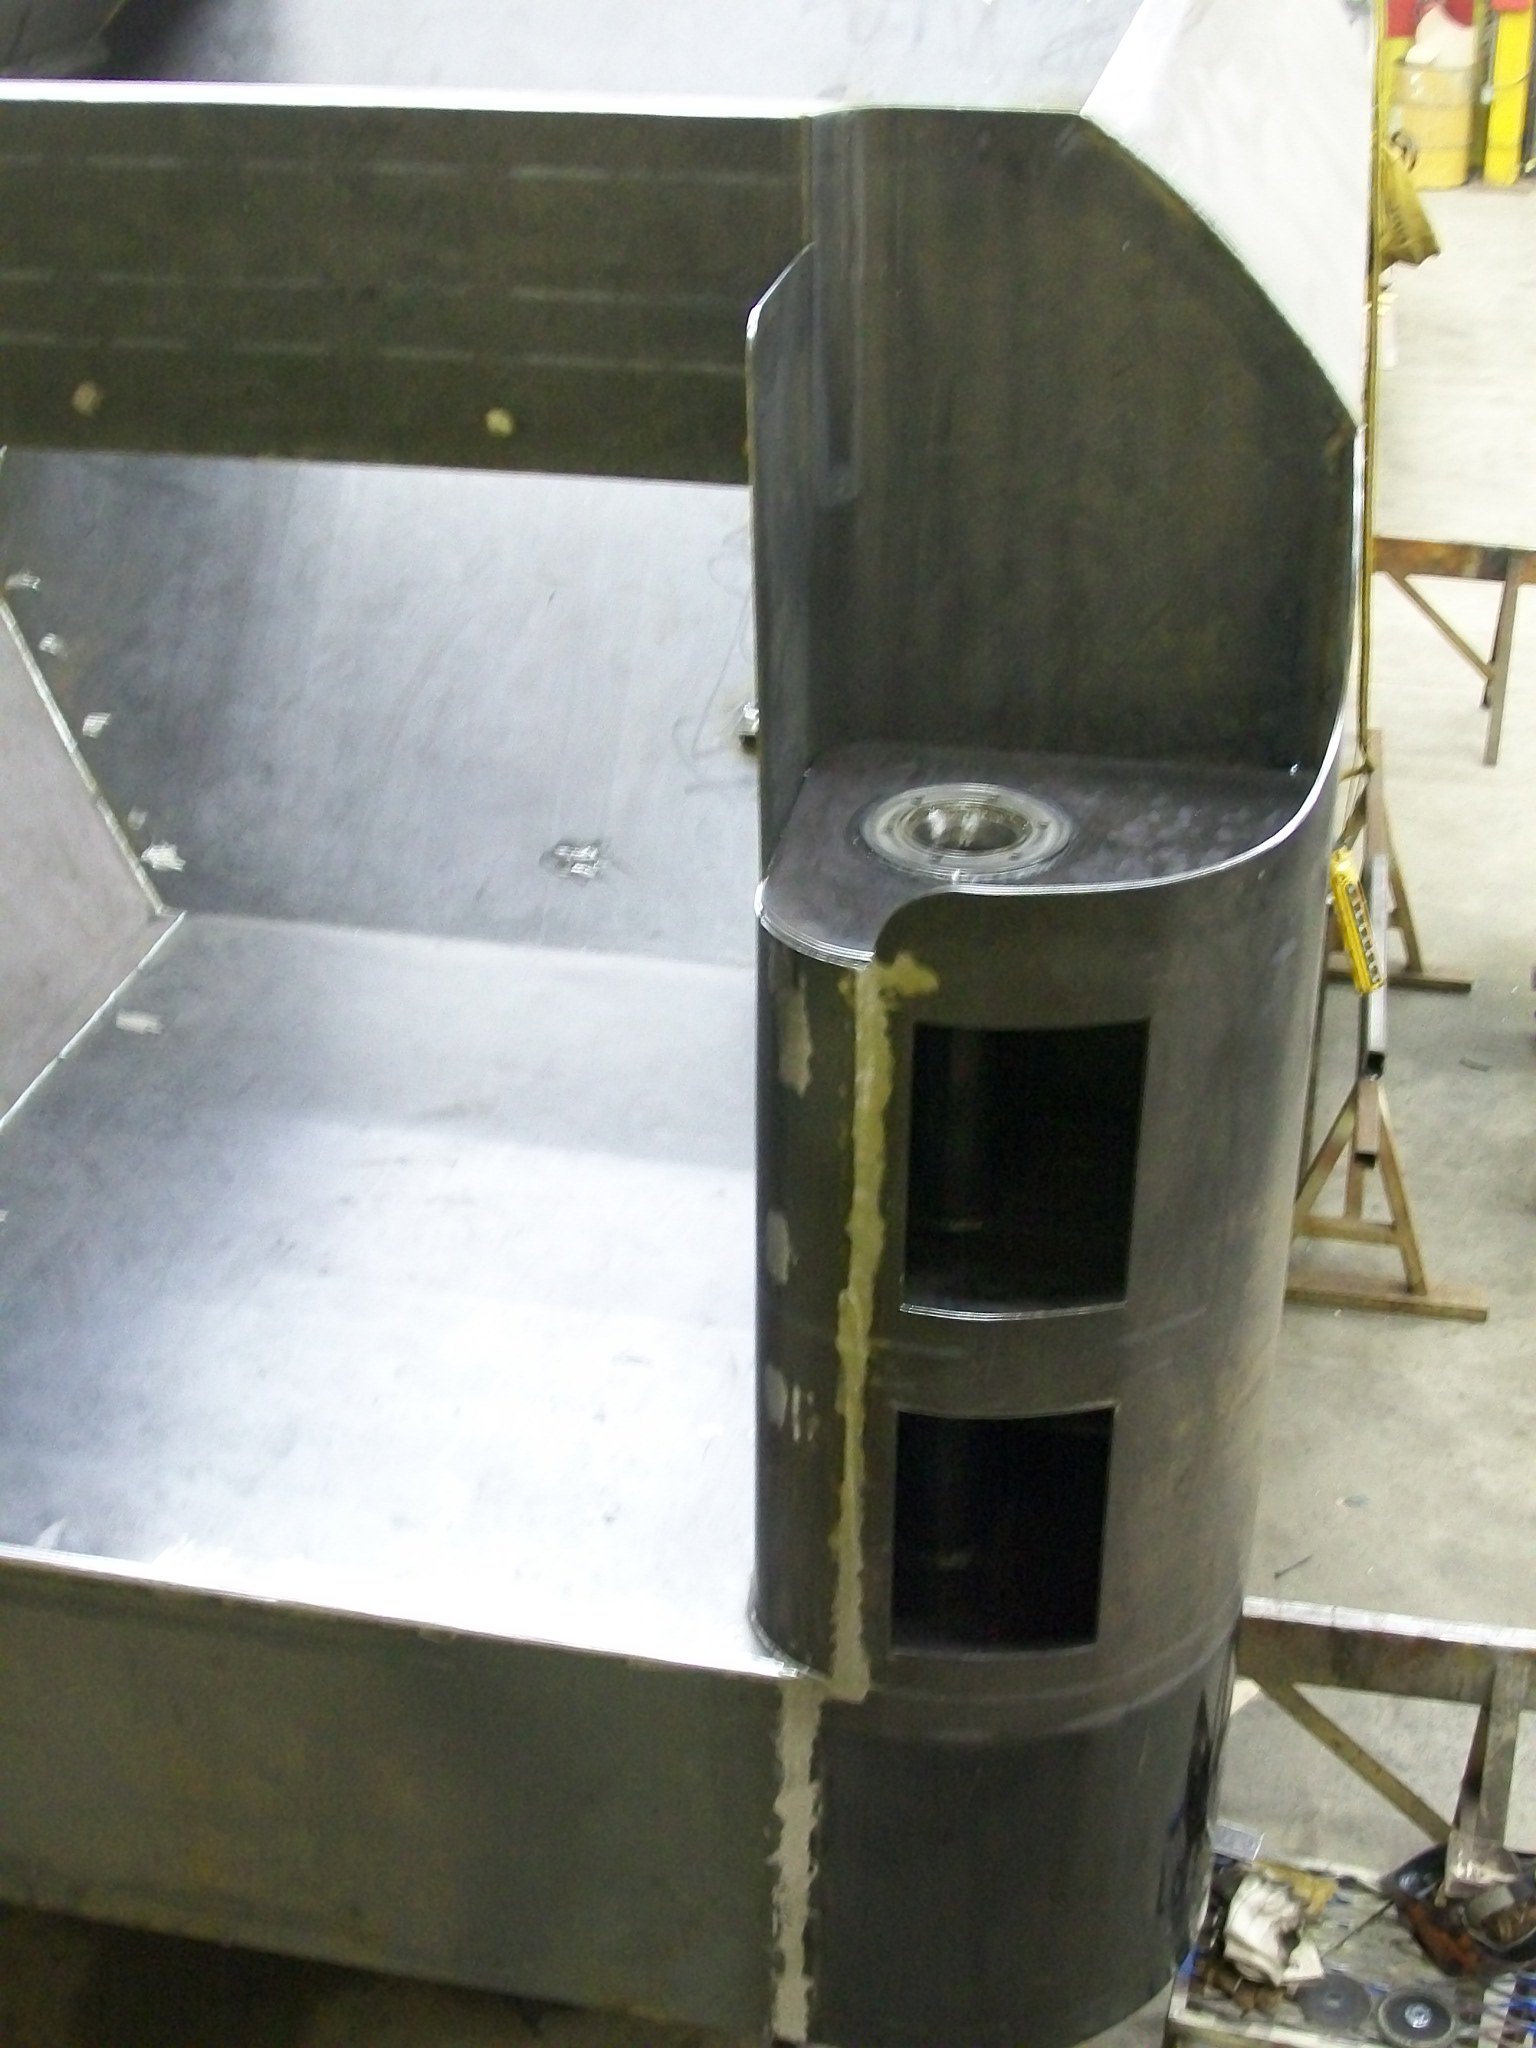 New C&NW 1385 tender tank under construction at DRM Industries. March 16, 2012. Photo by DRM Industries